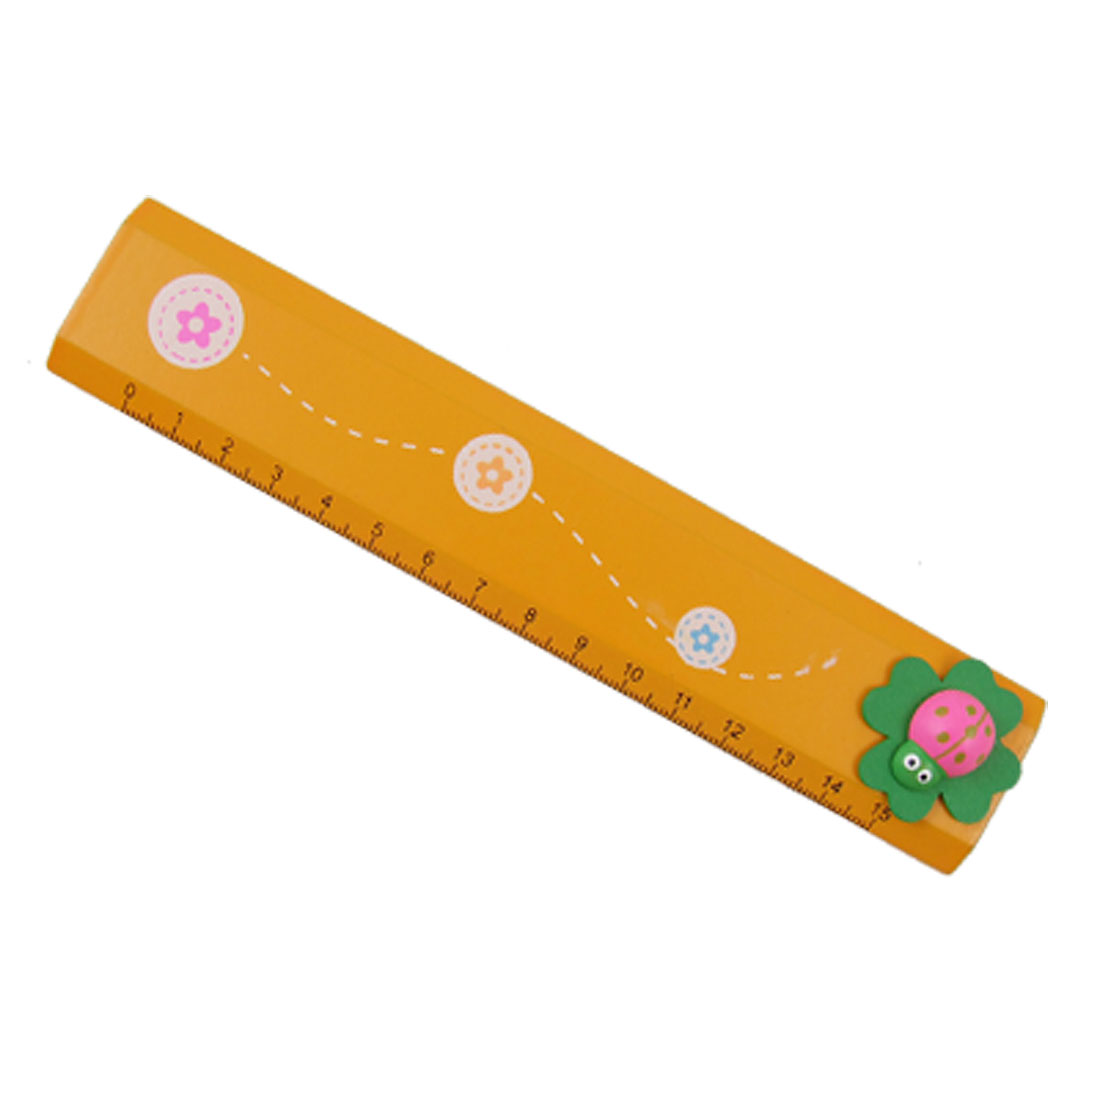 Cartoon Ladybug Leaf Design Yellow Painted Wooden Ruler